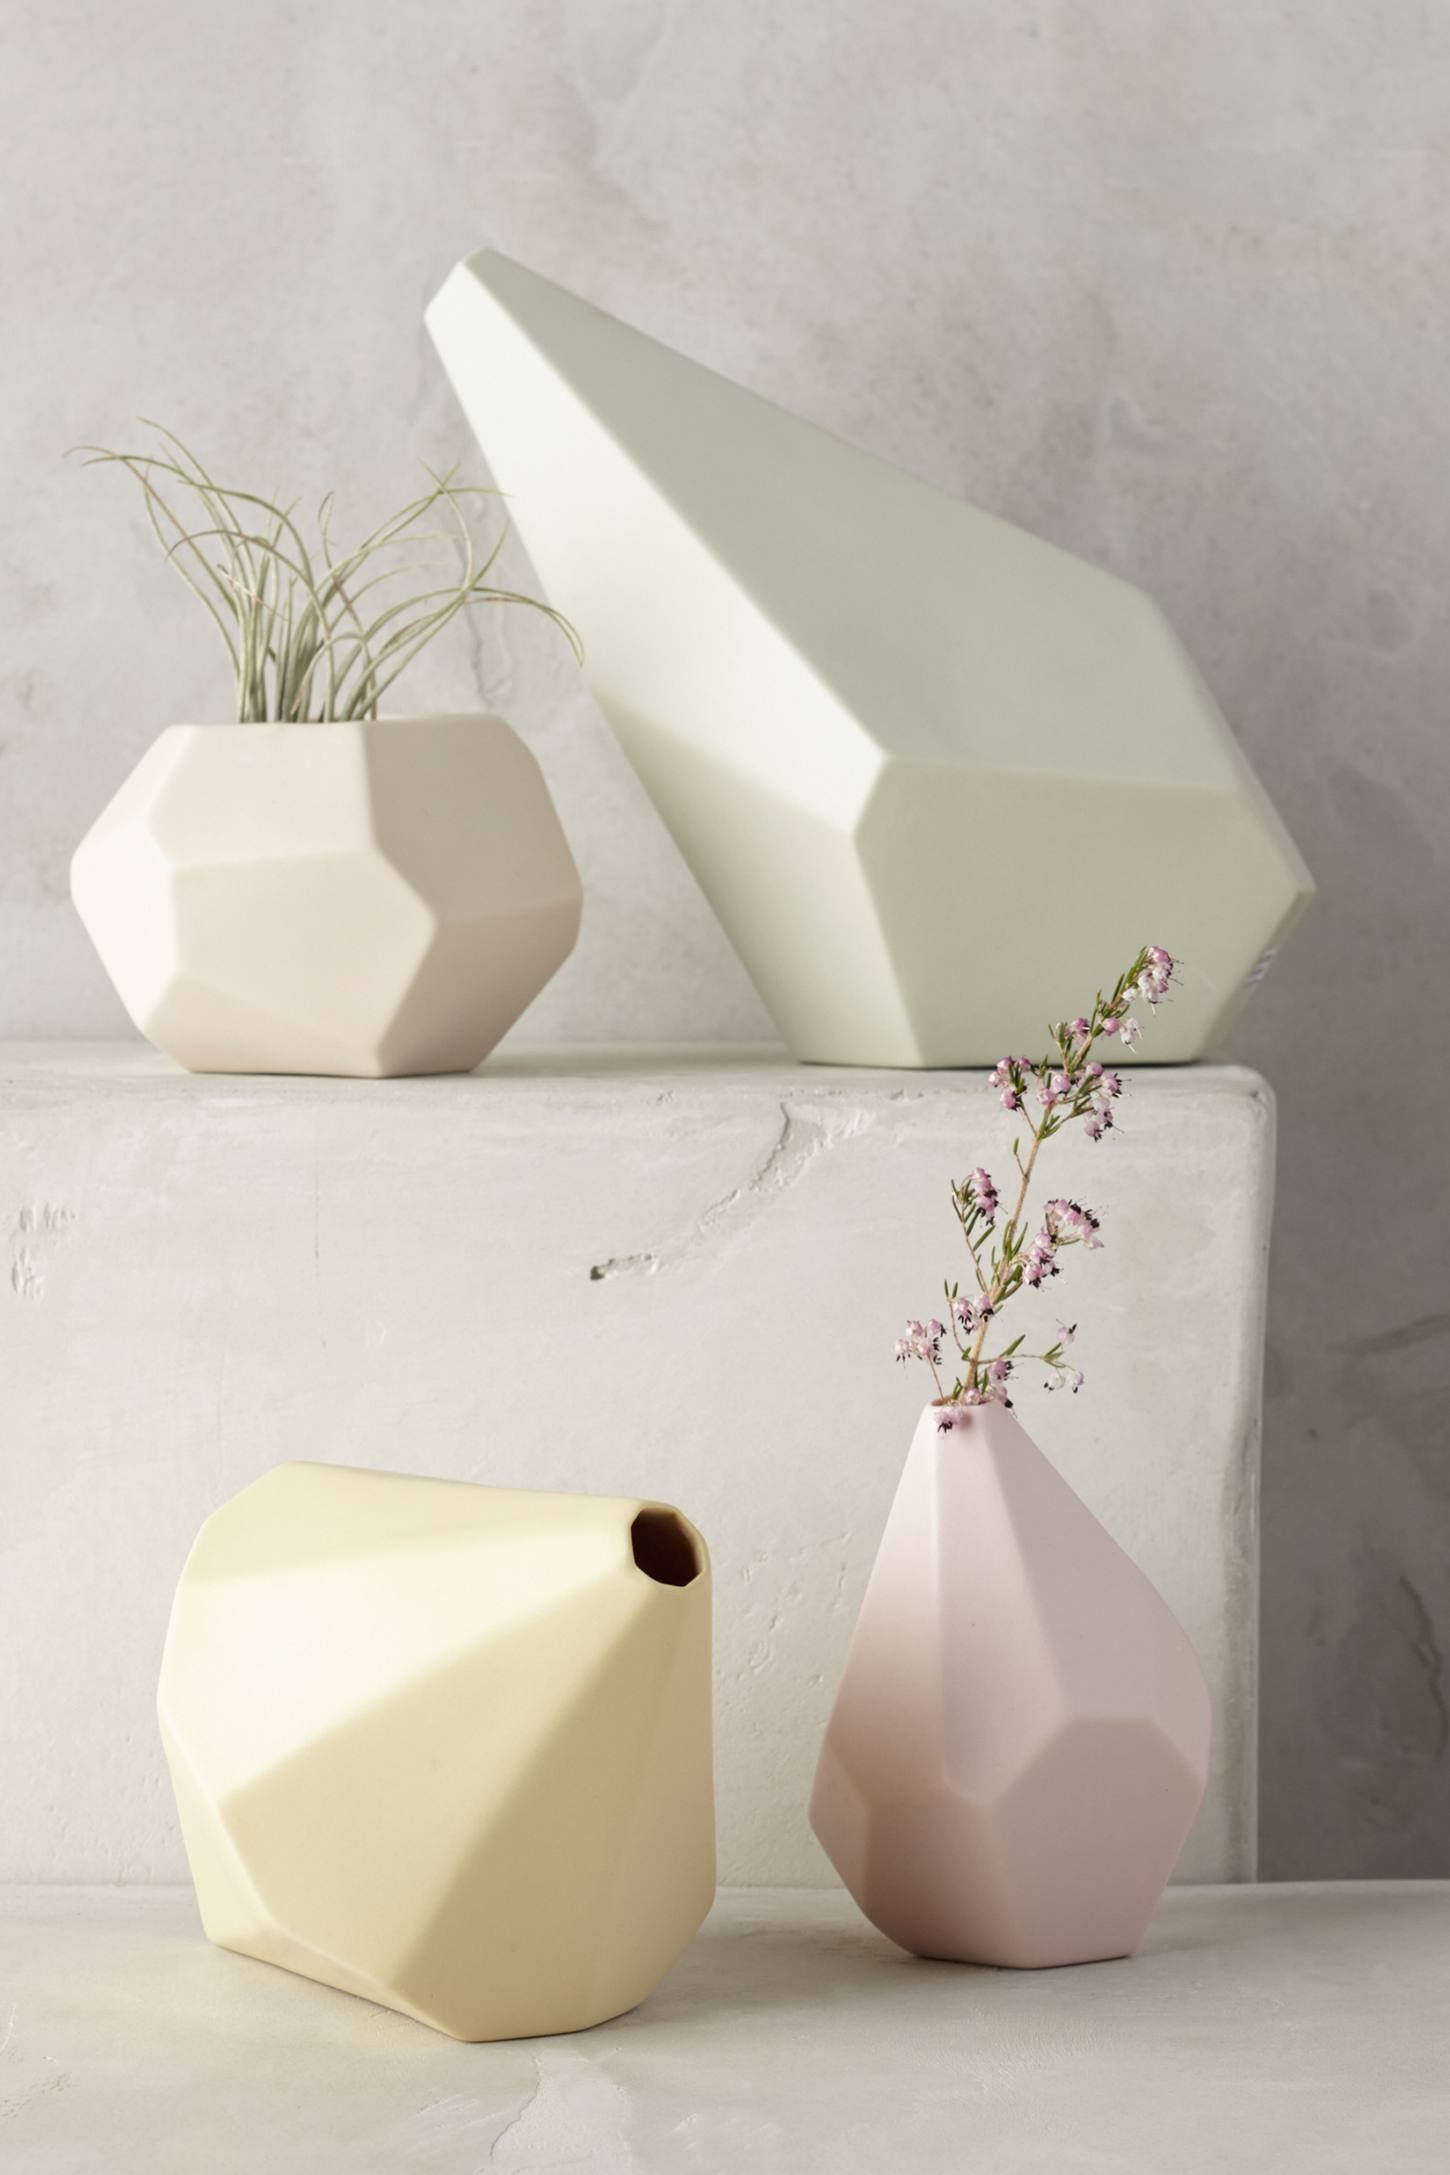 Geo vases from Anthropologie